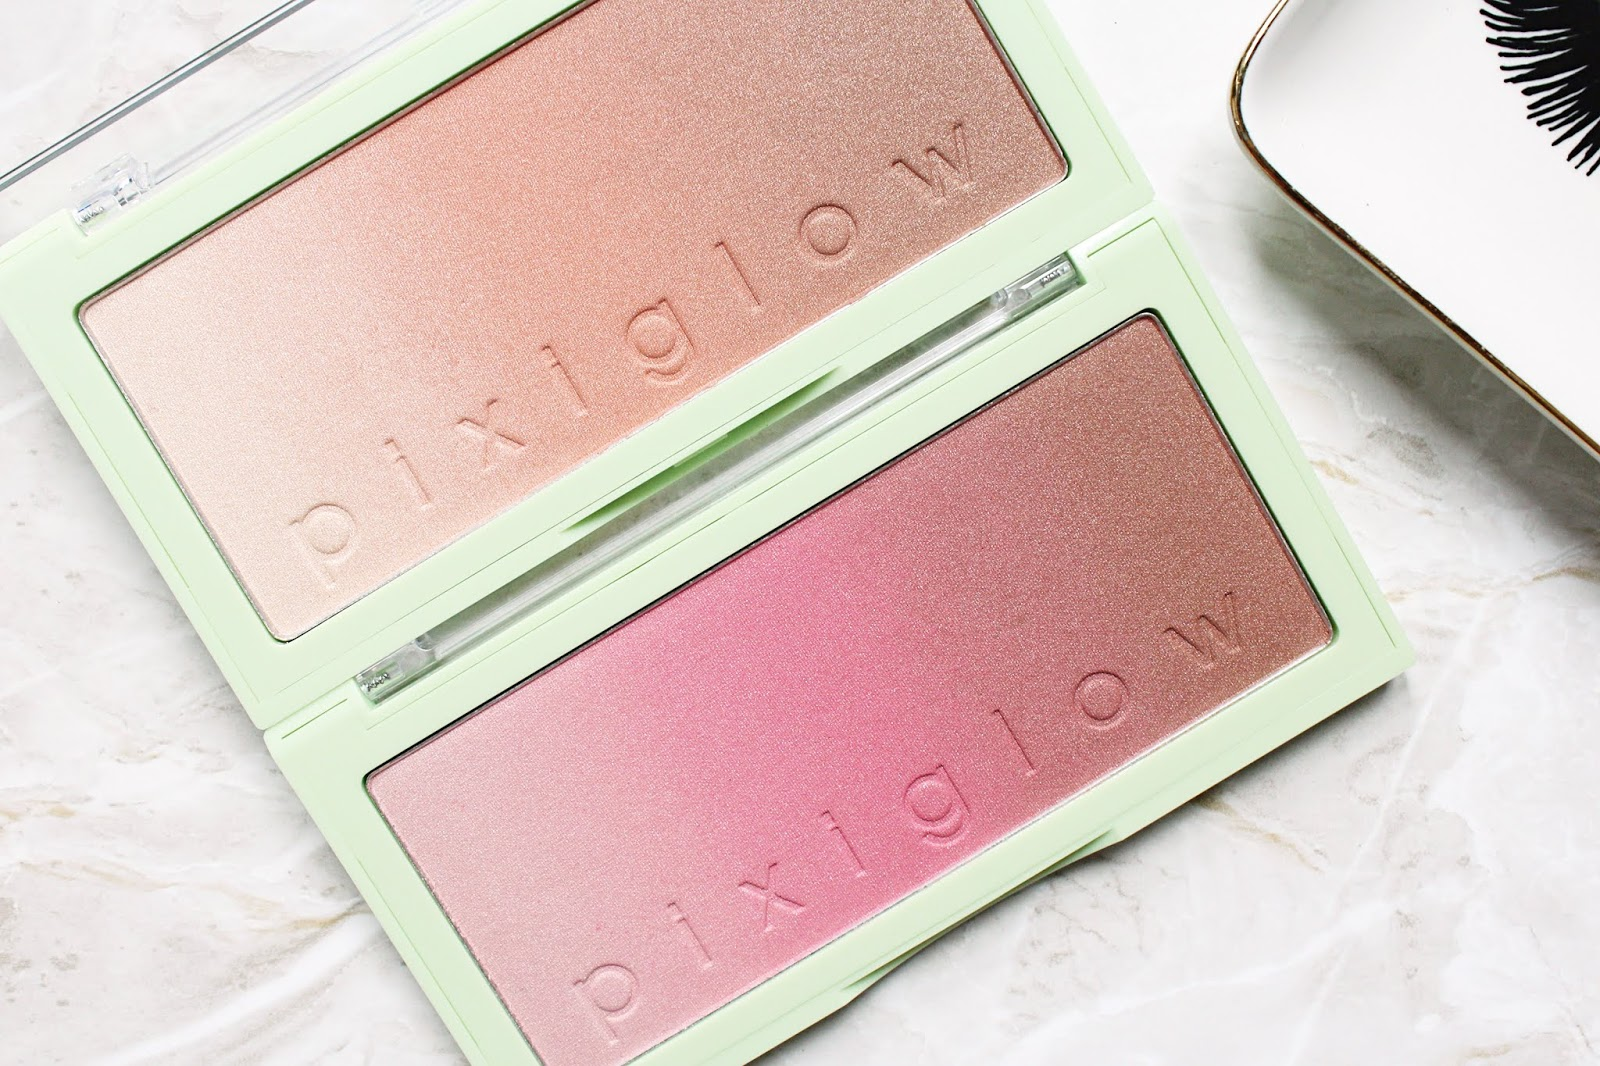 New Pixi Products You Need This Autumn